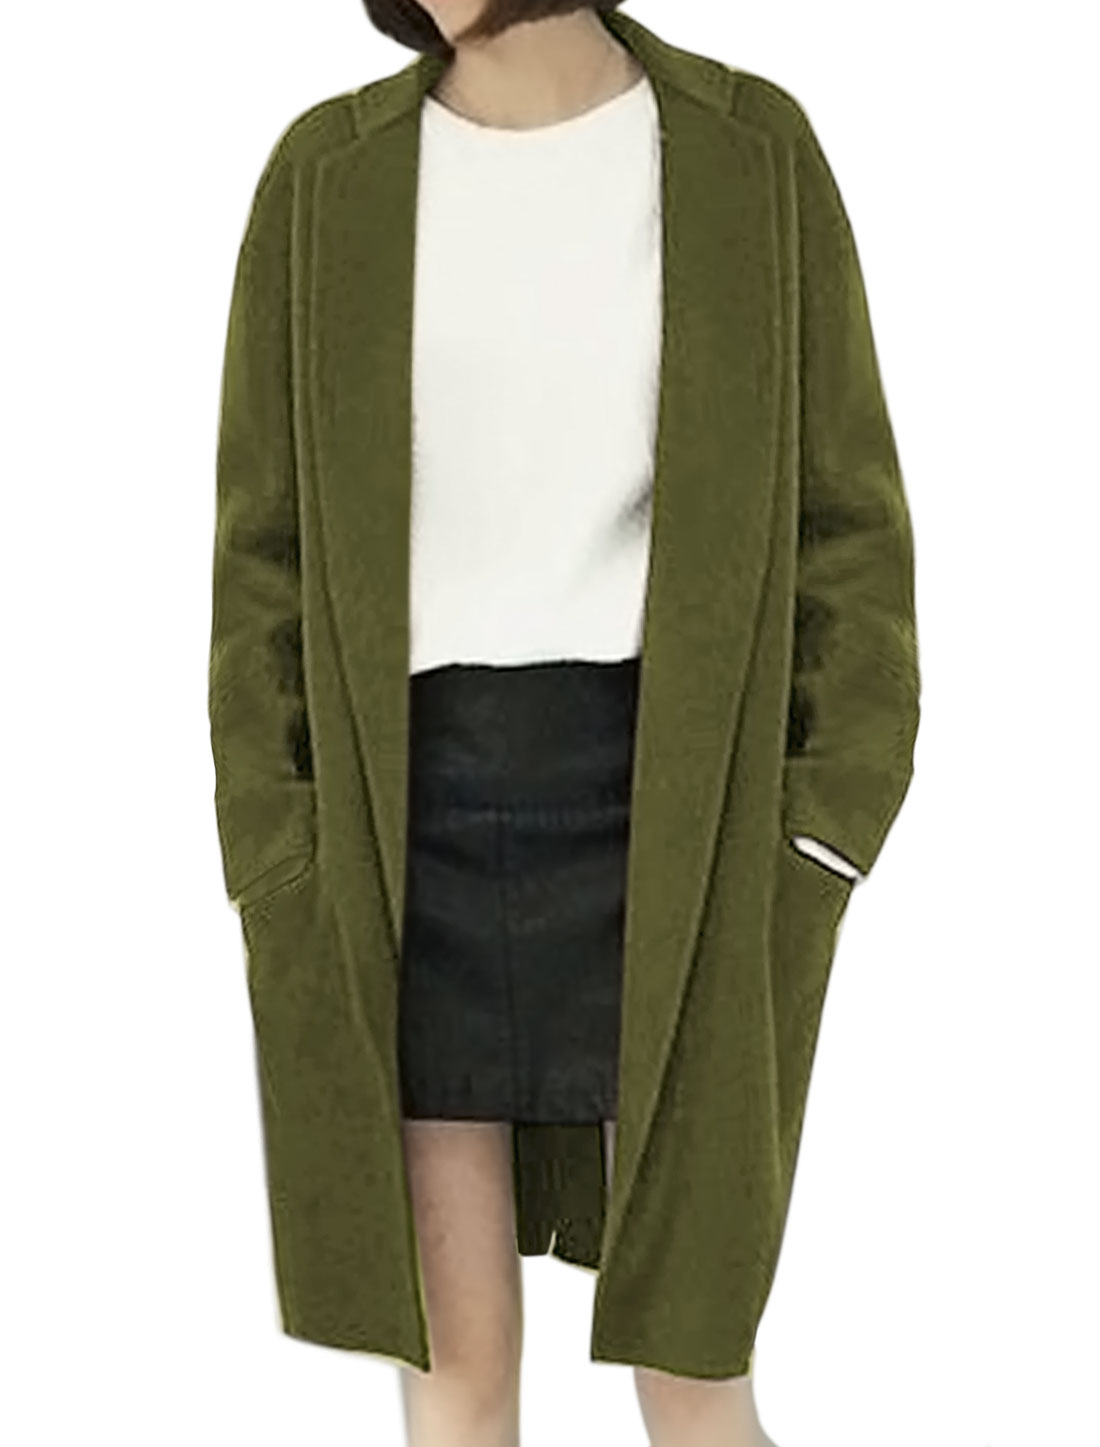 Lady Collared Open Front Tunic Worsted Coat Green XS